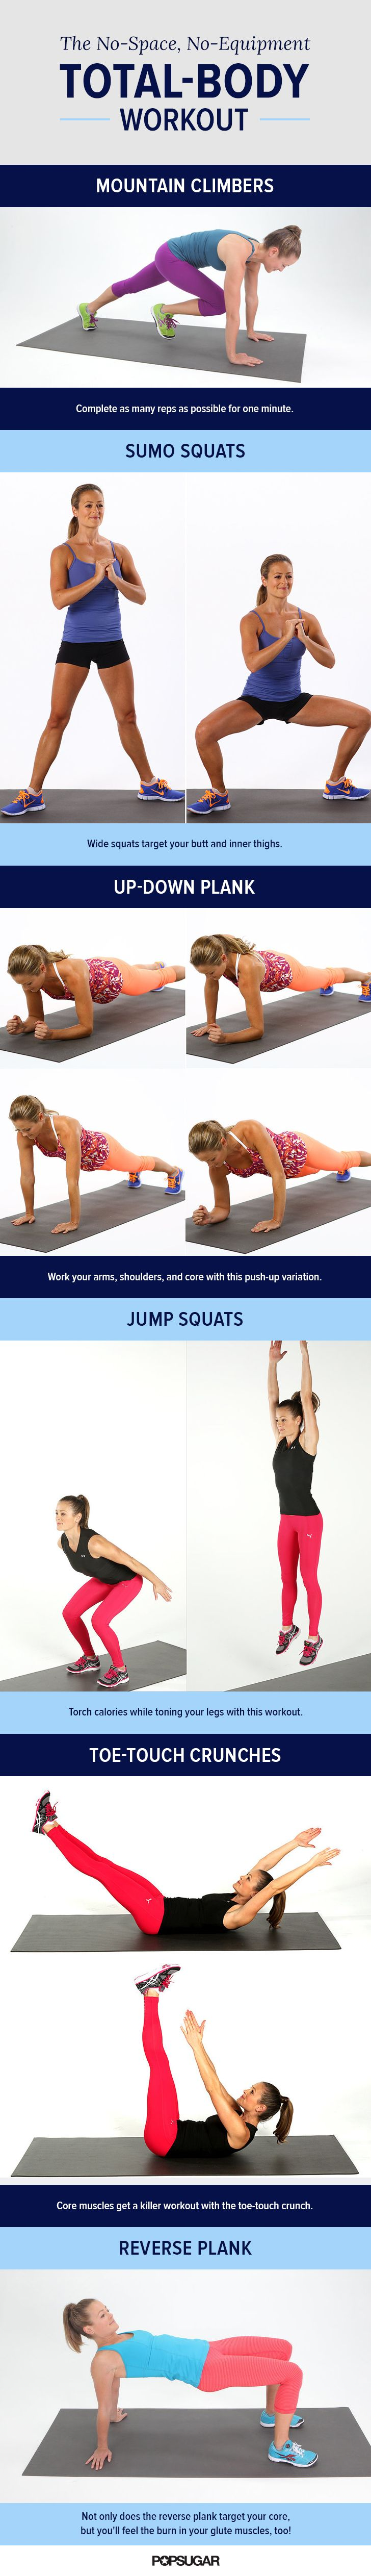 Don't have a gym membership? Don't worry! This total body workout routine will take you through exercises, like squats and planks, to tone up without equipment.